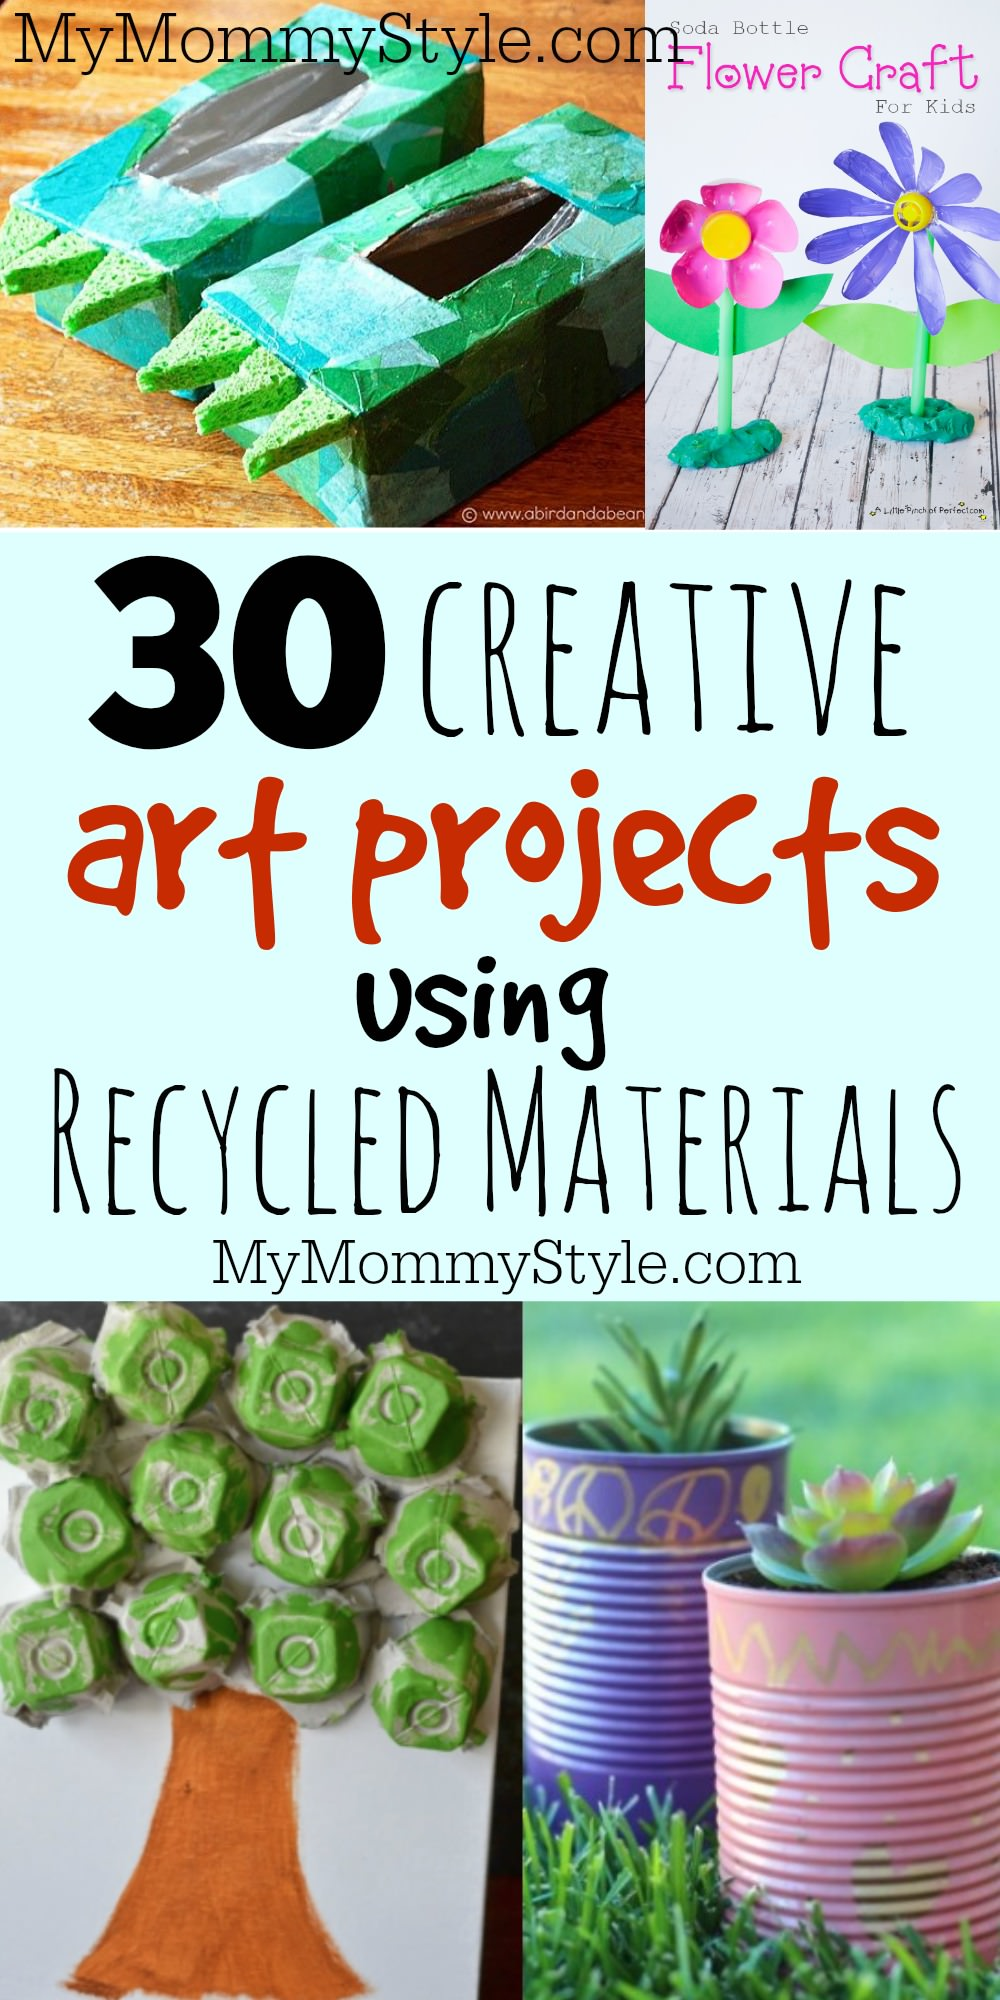 30 Creative Art Projects Using Recycled Materials My Mommy Style